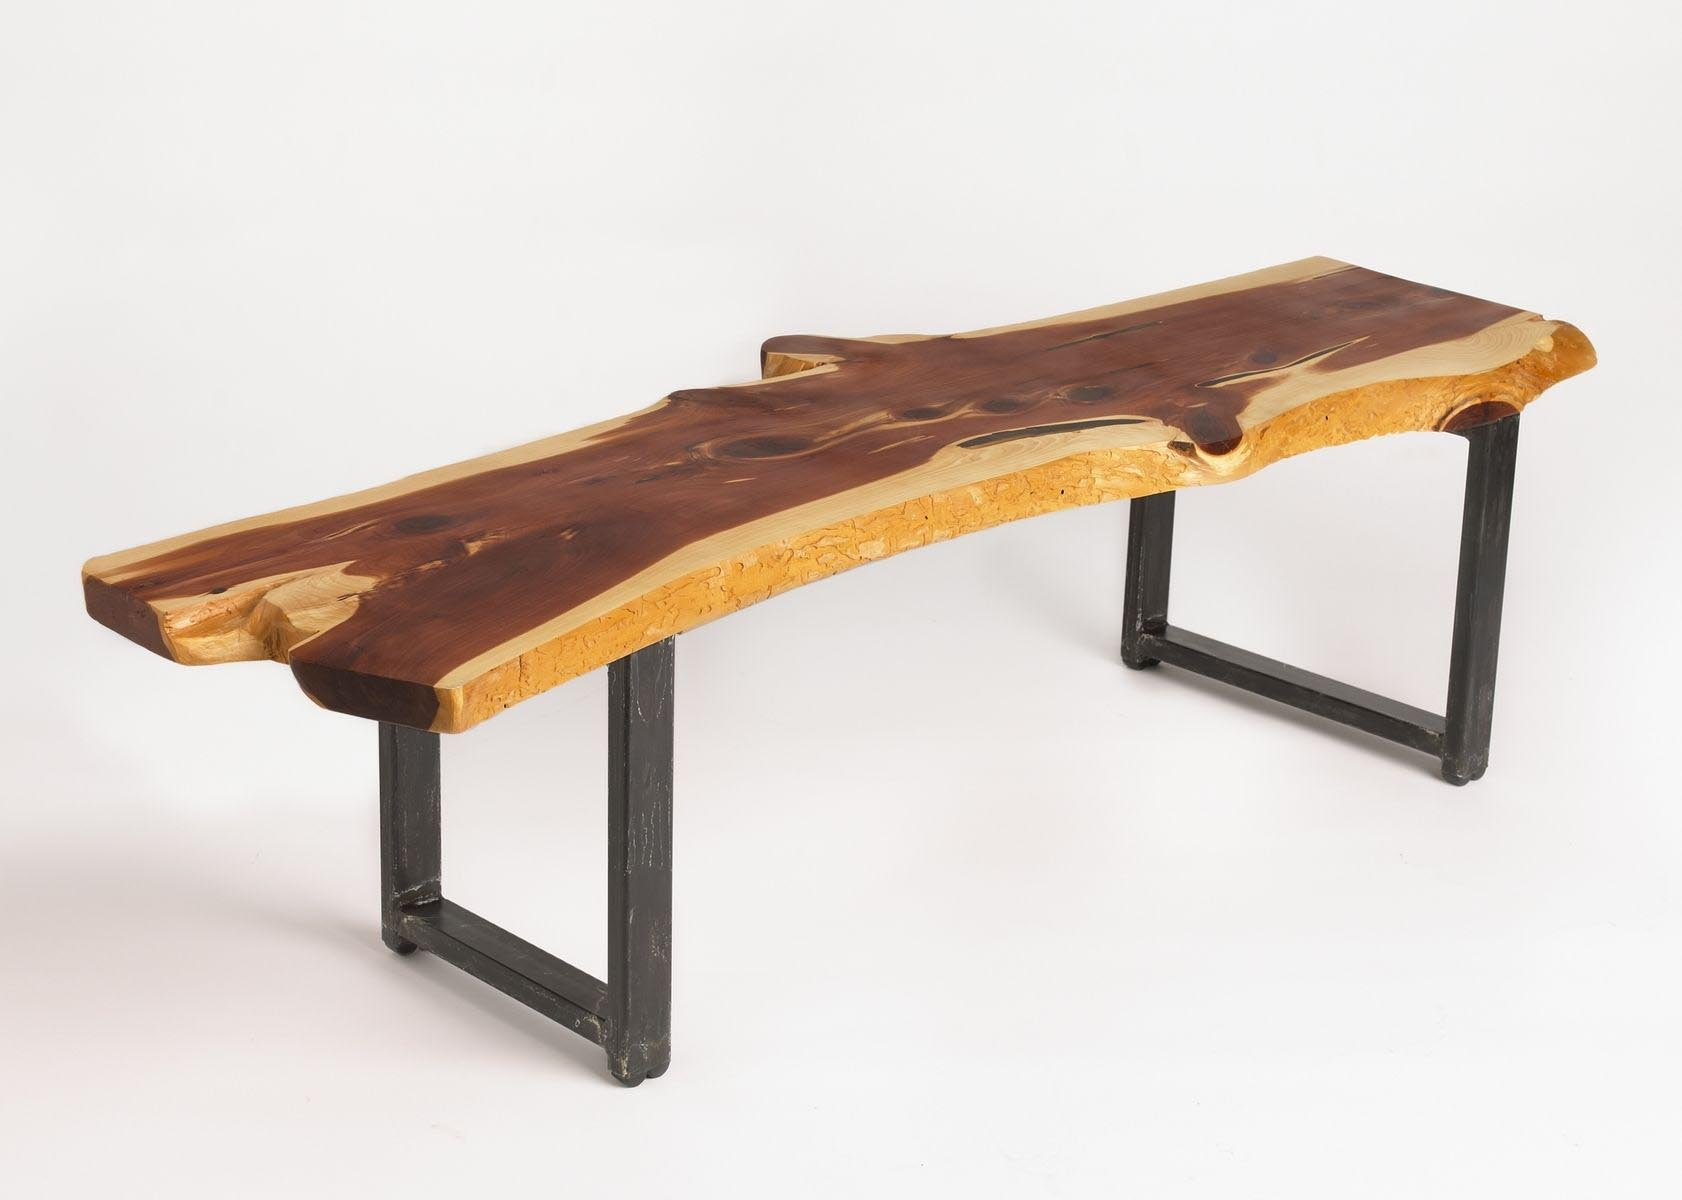 Large wood slab coffee table coffee table design ideas for Large wooden coffee tables